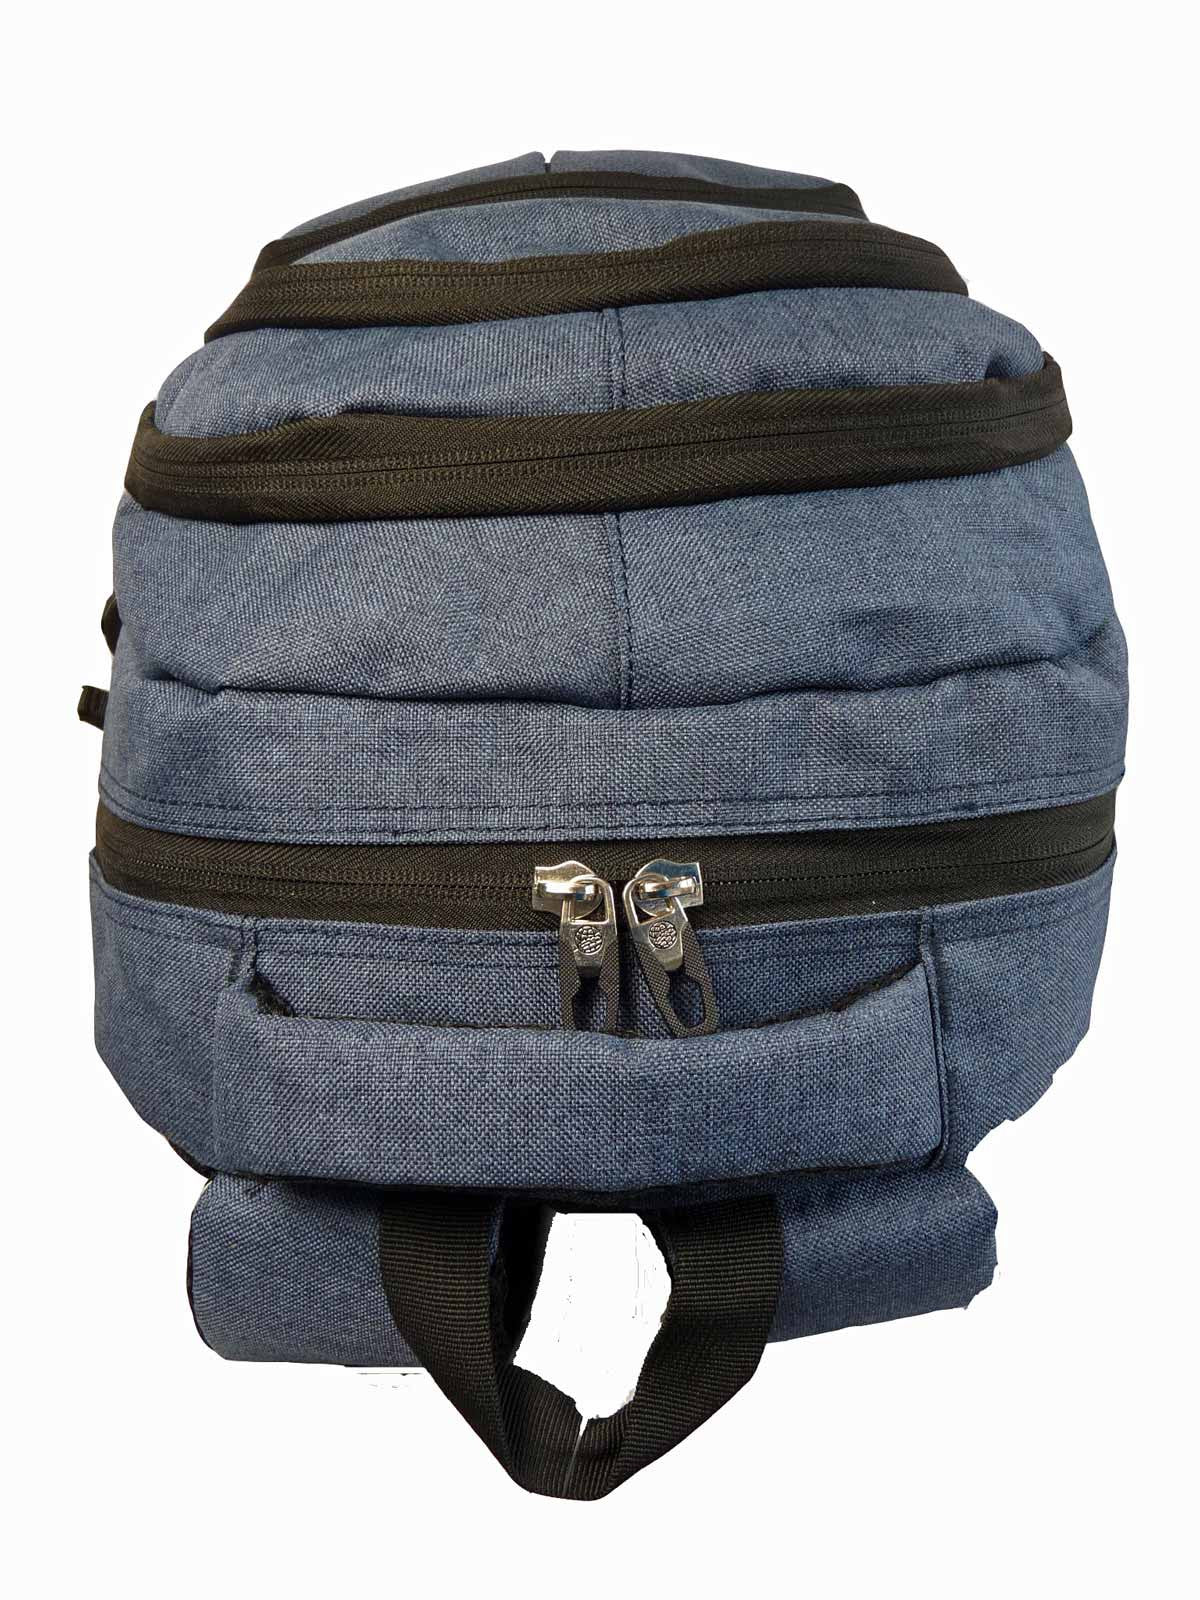 Laptop Macbook Backpack Rucksack Bag RL43N Top View